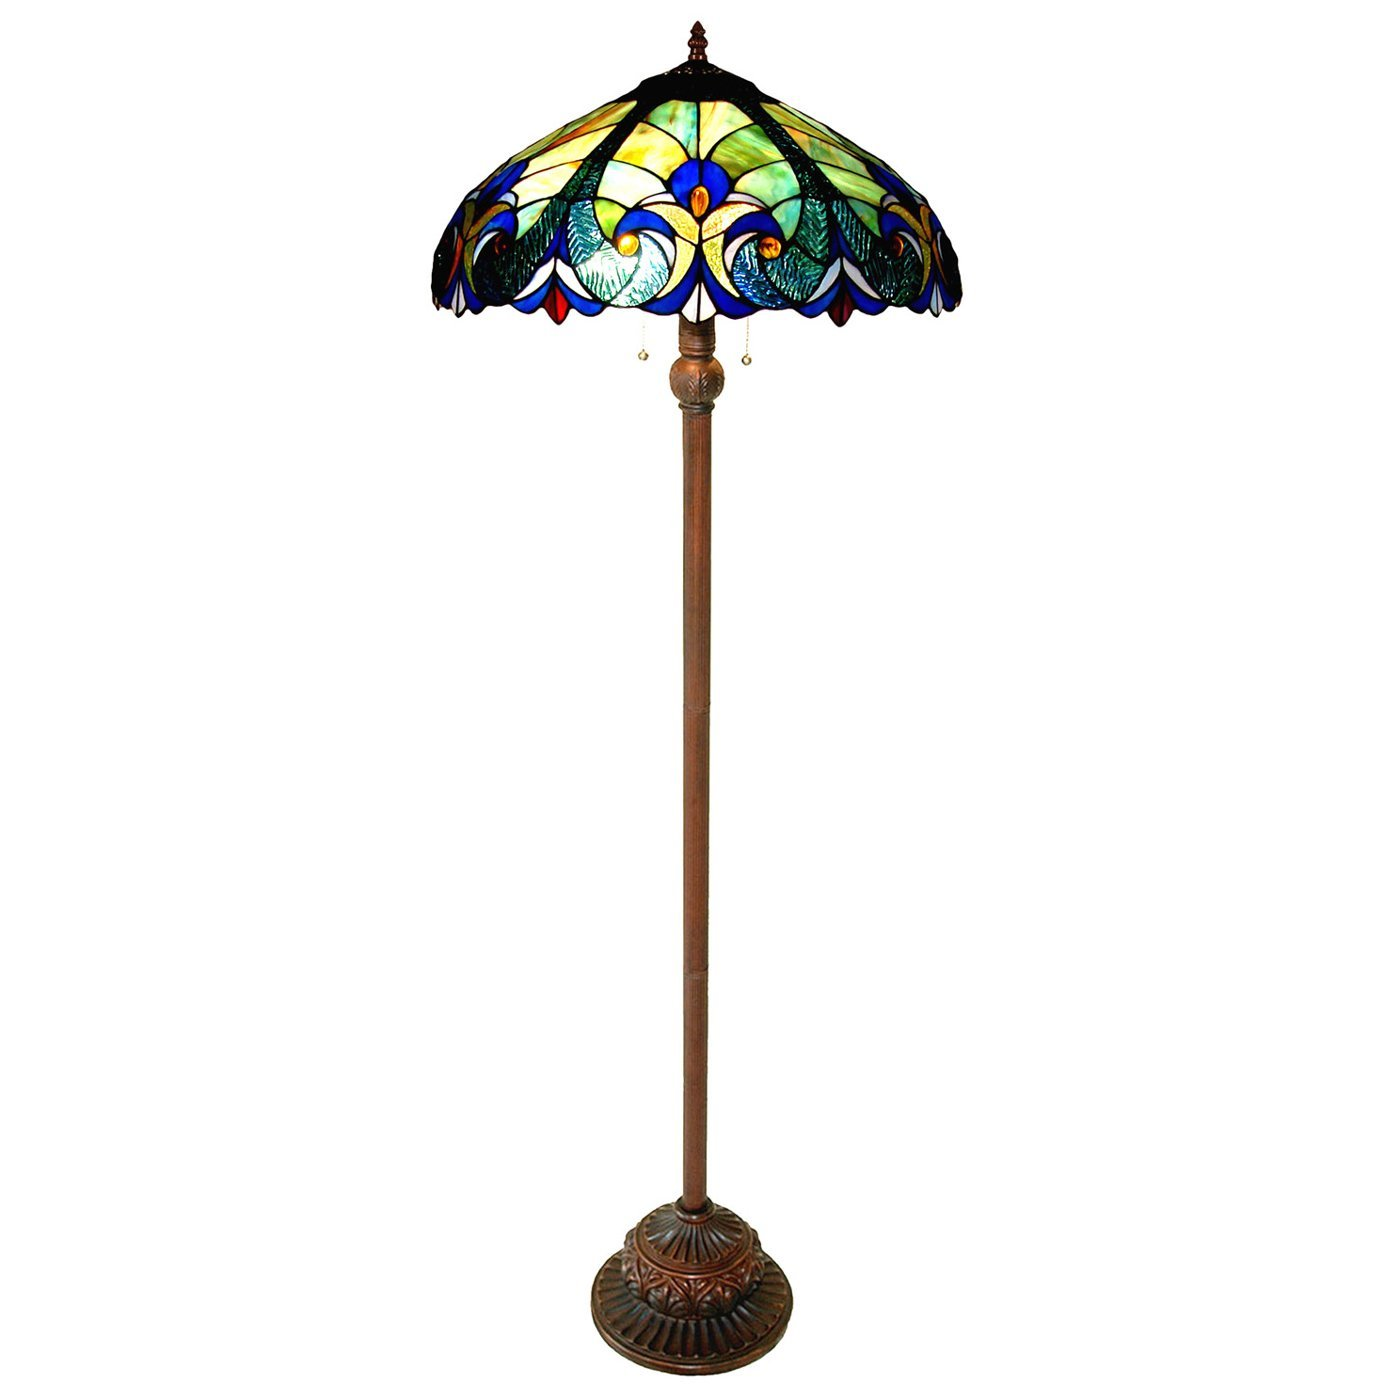 Chloe lighting ch18780t fl2 light victorian floor lamp tiffany chloe lighting ch18780t fl2 light victorian floor lamp tiffany floor lamp amazon aloadofball Gallery